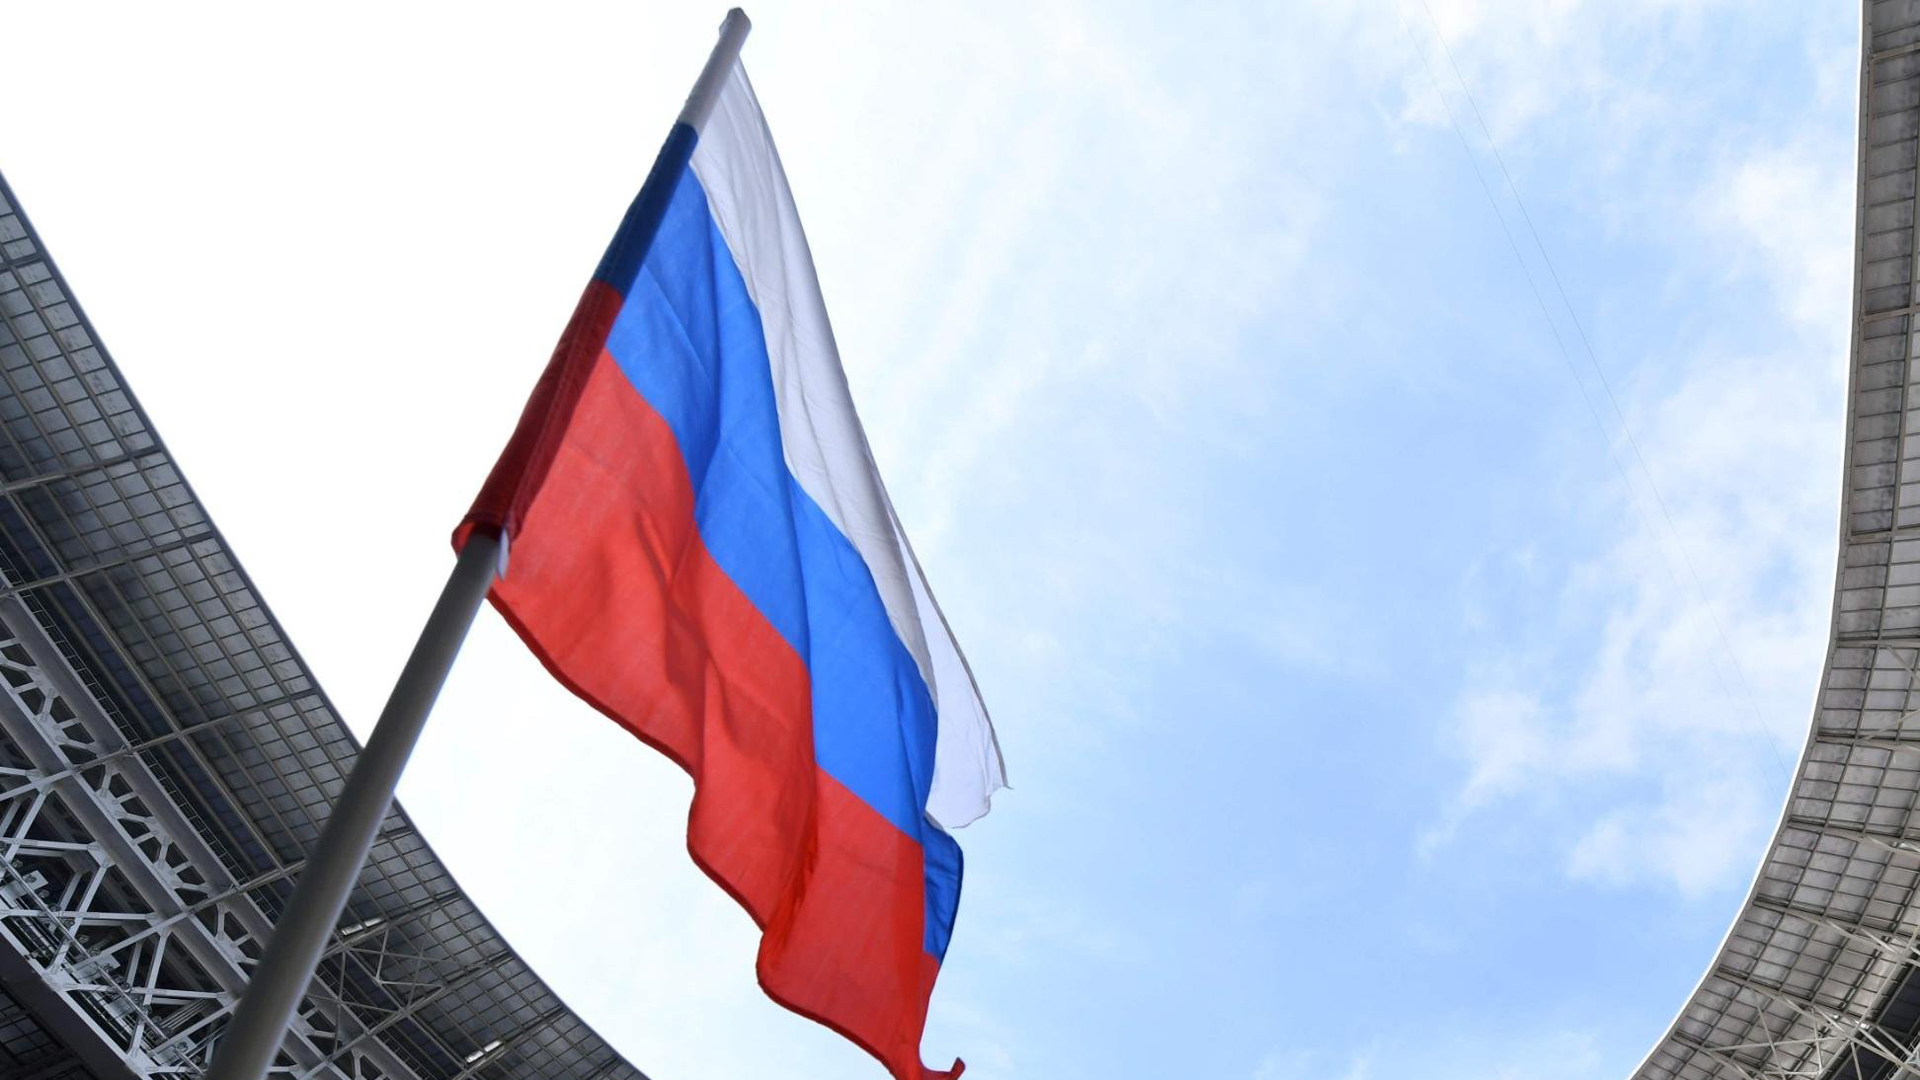 A Russian flag is seen in a file photo. (Credit: AFP / Getty Images)